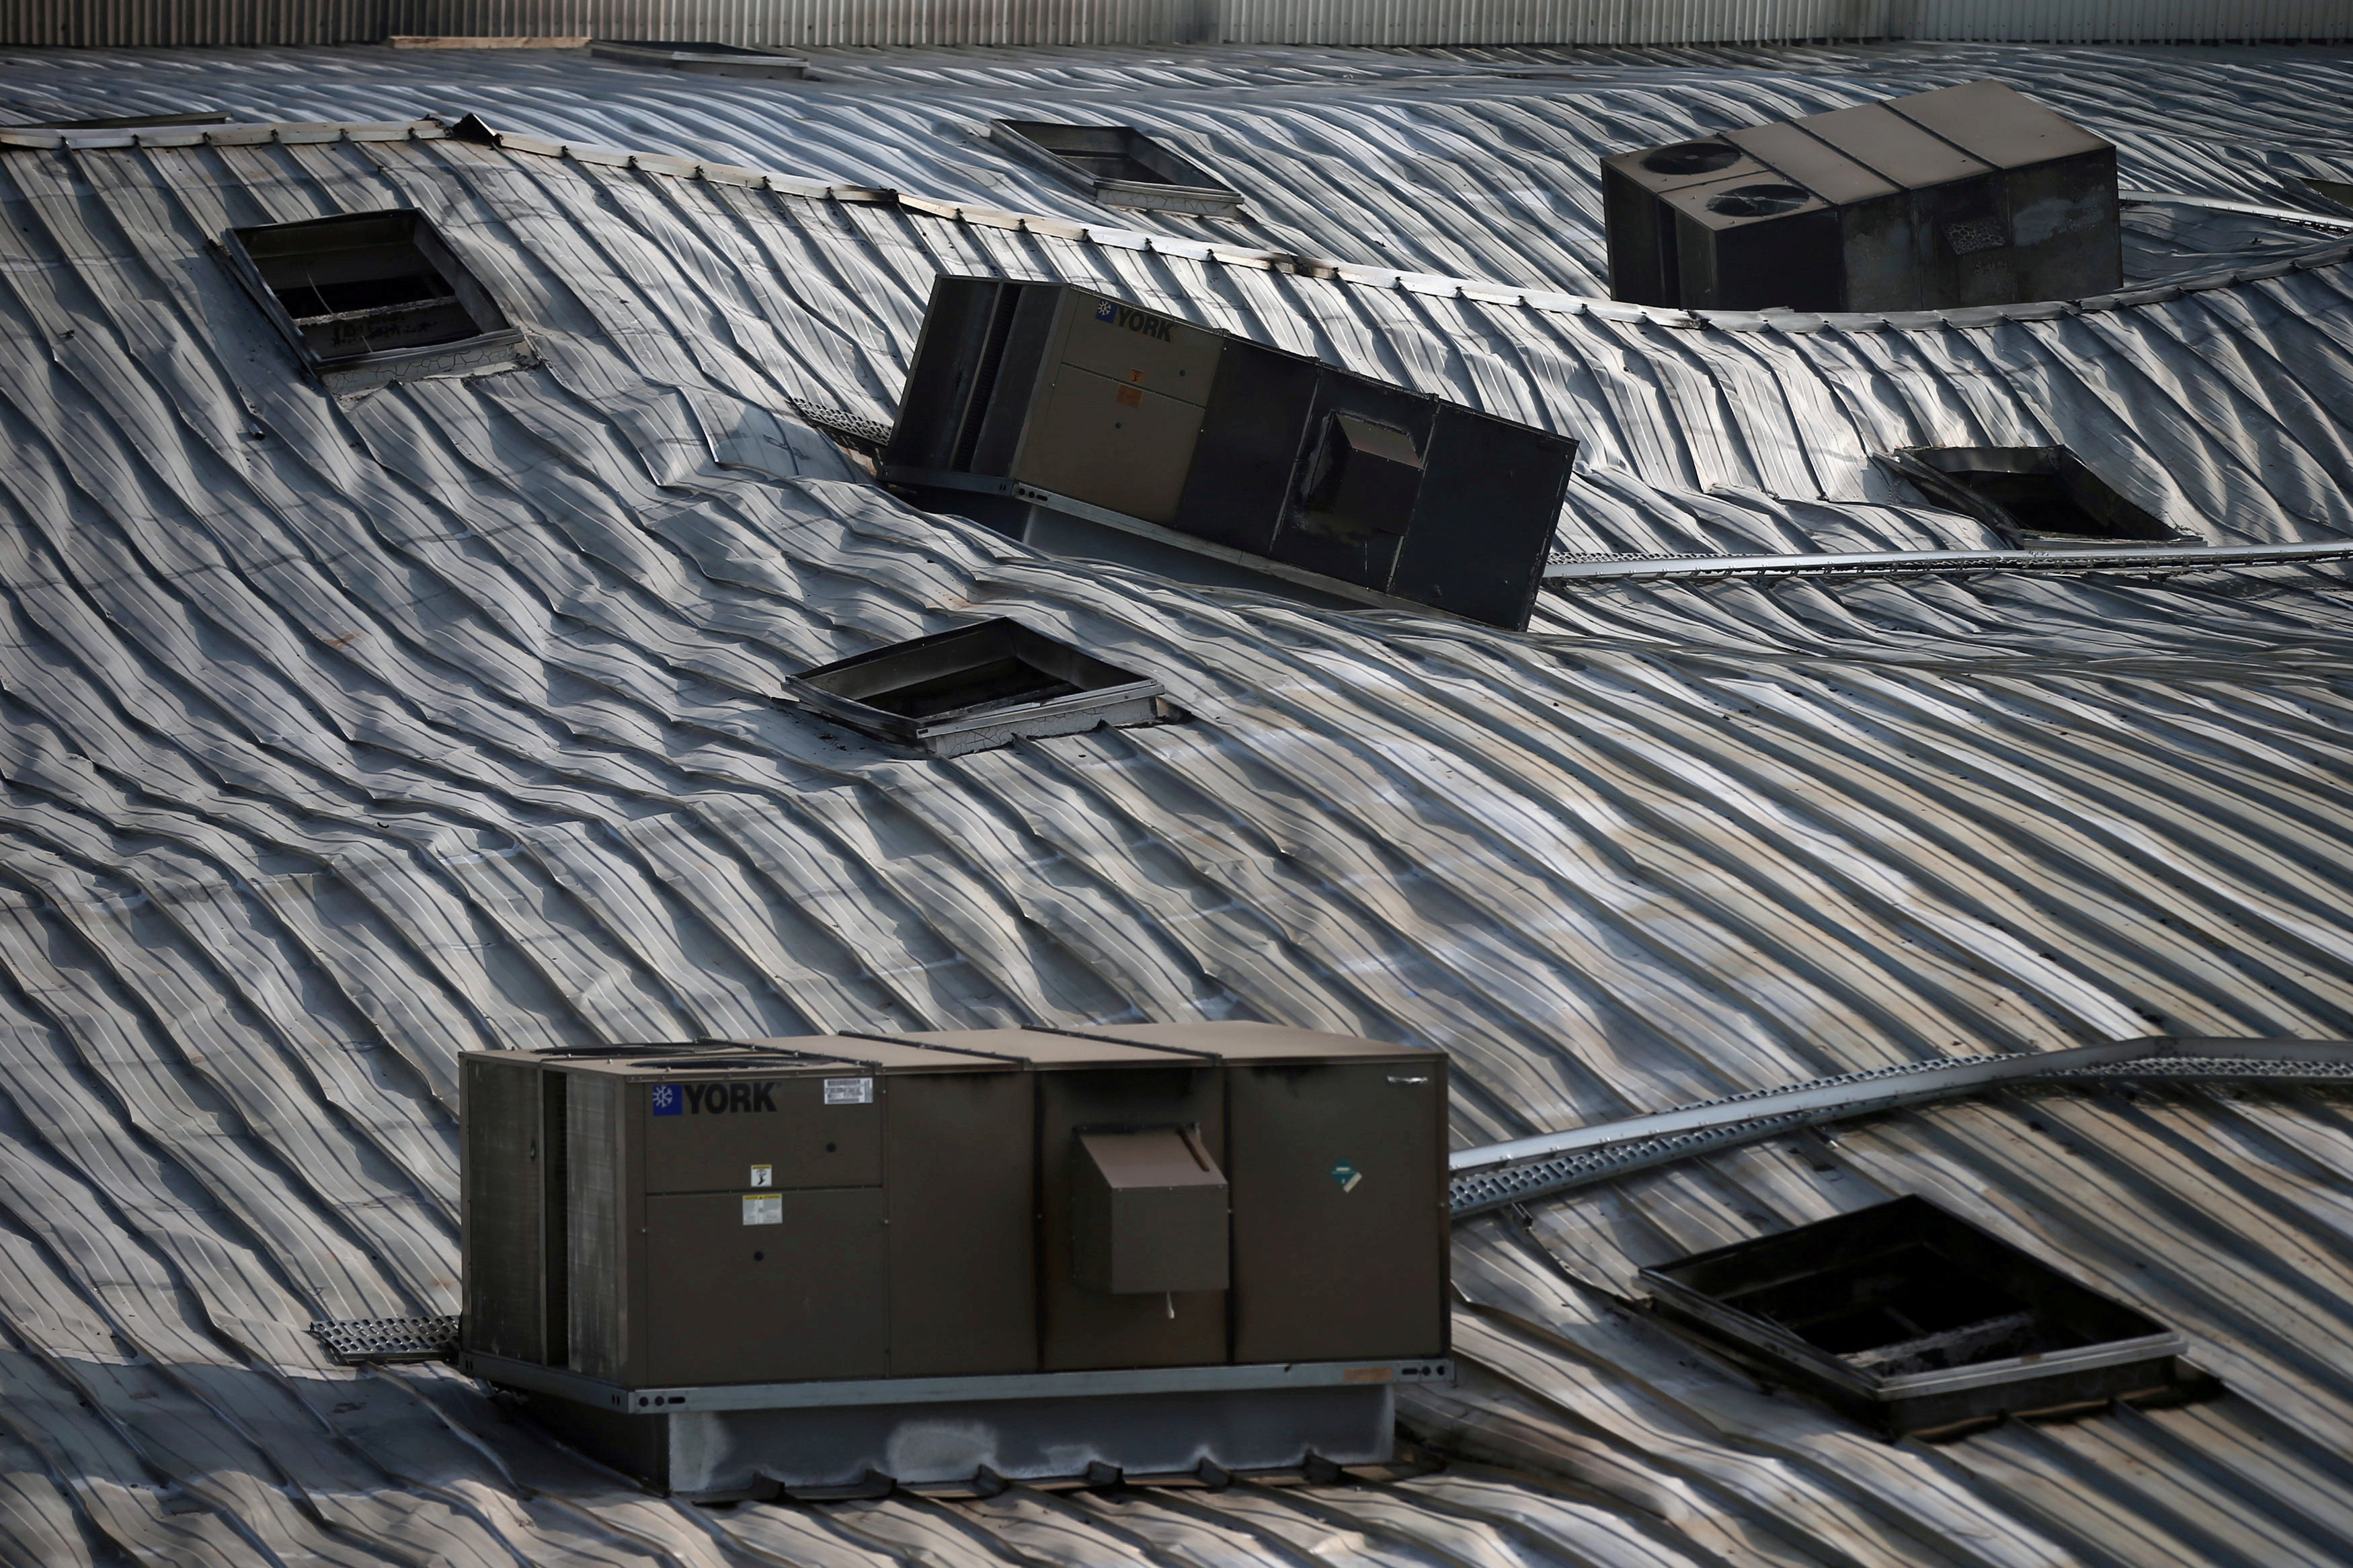 Air conditioners are pictured on the damaged roof of Mexican supermarket Chedraui, where fire broke out, in Mexico City, Mexico March 9, 2018. REUTERS/Edgard Garrido - RC11839705C0